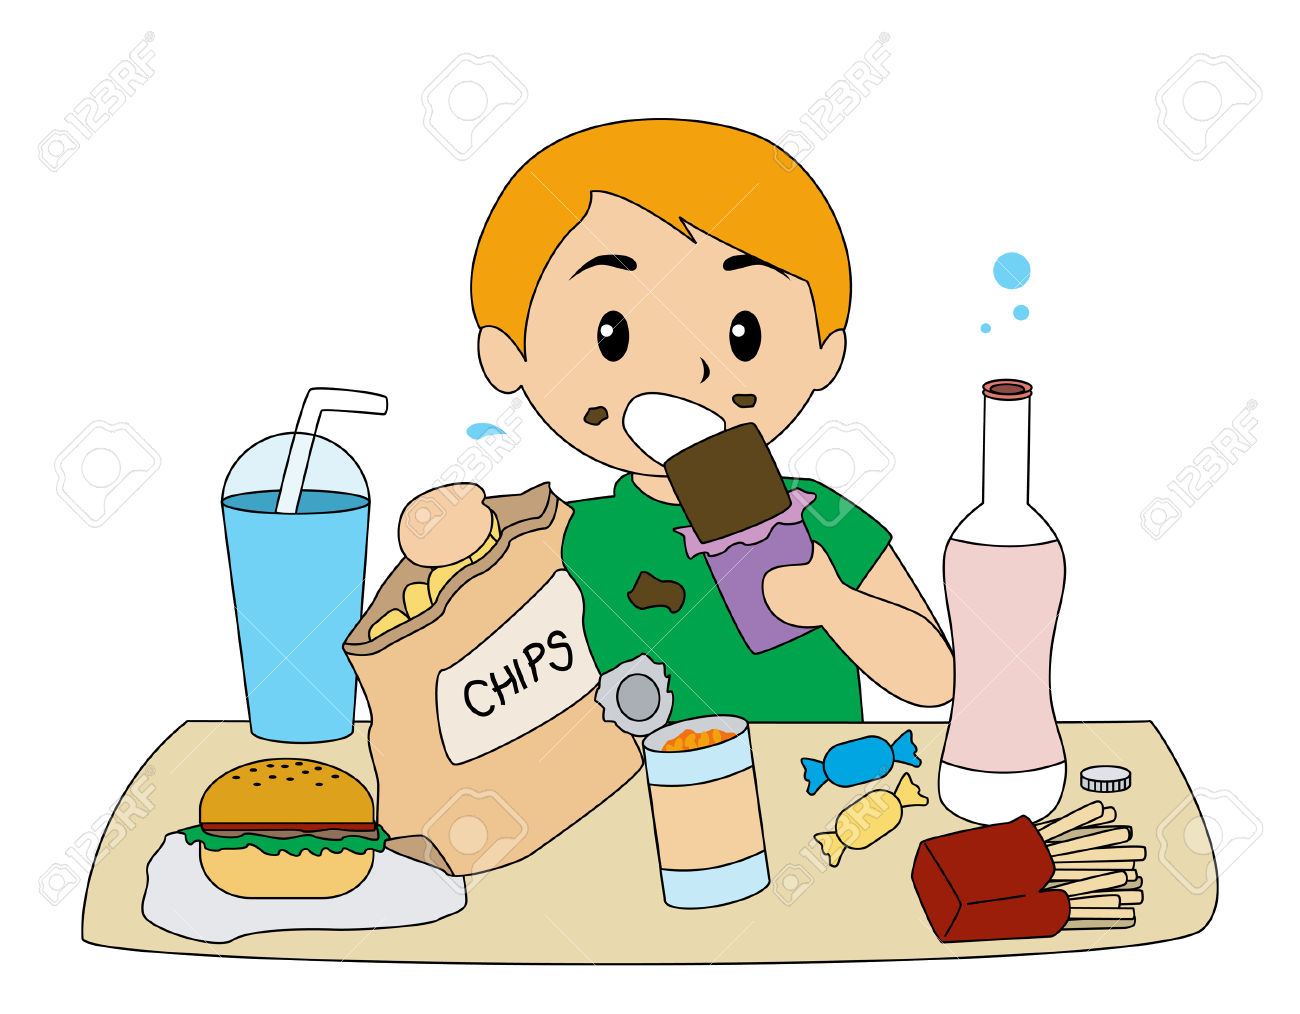 eating healthy foods clipart 6 clipart station rh clipartstation com healthy food clipart black and white healthy food clipart